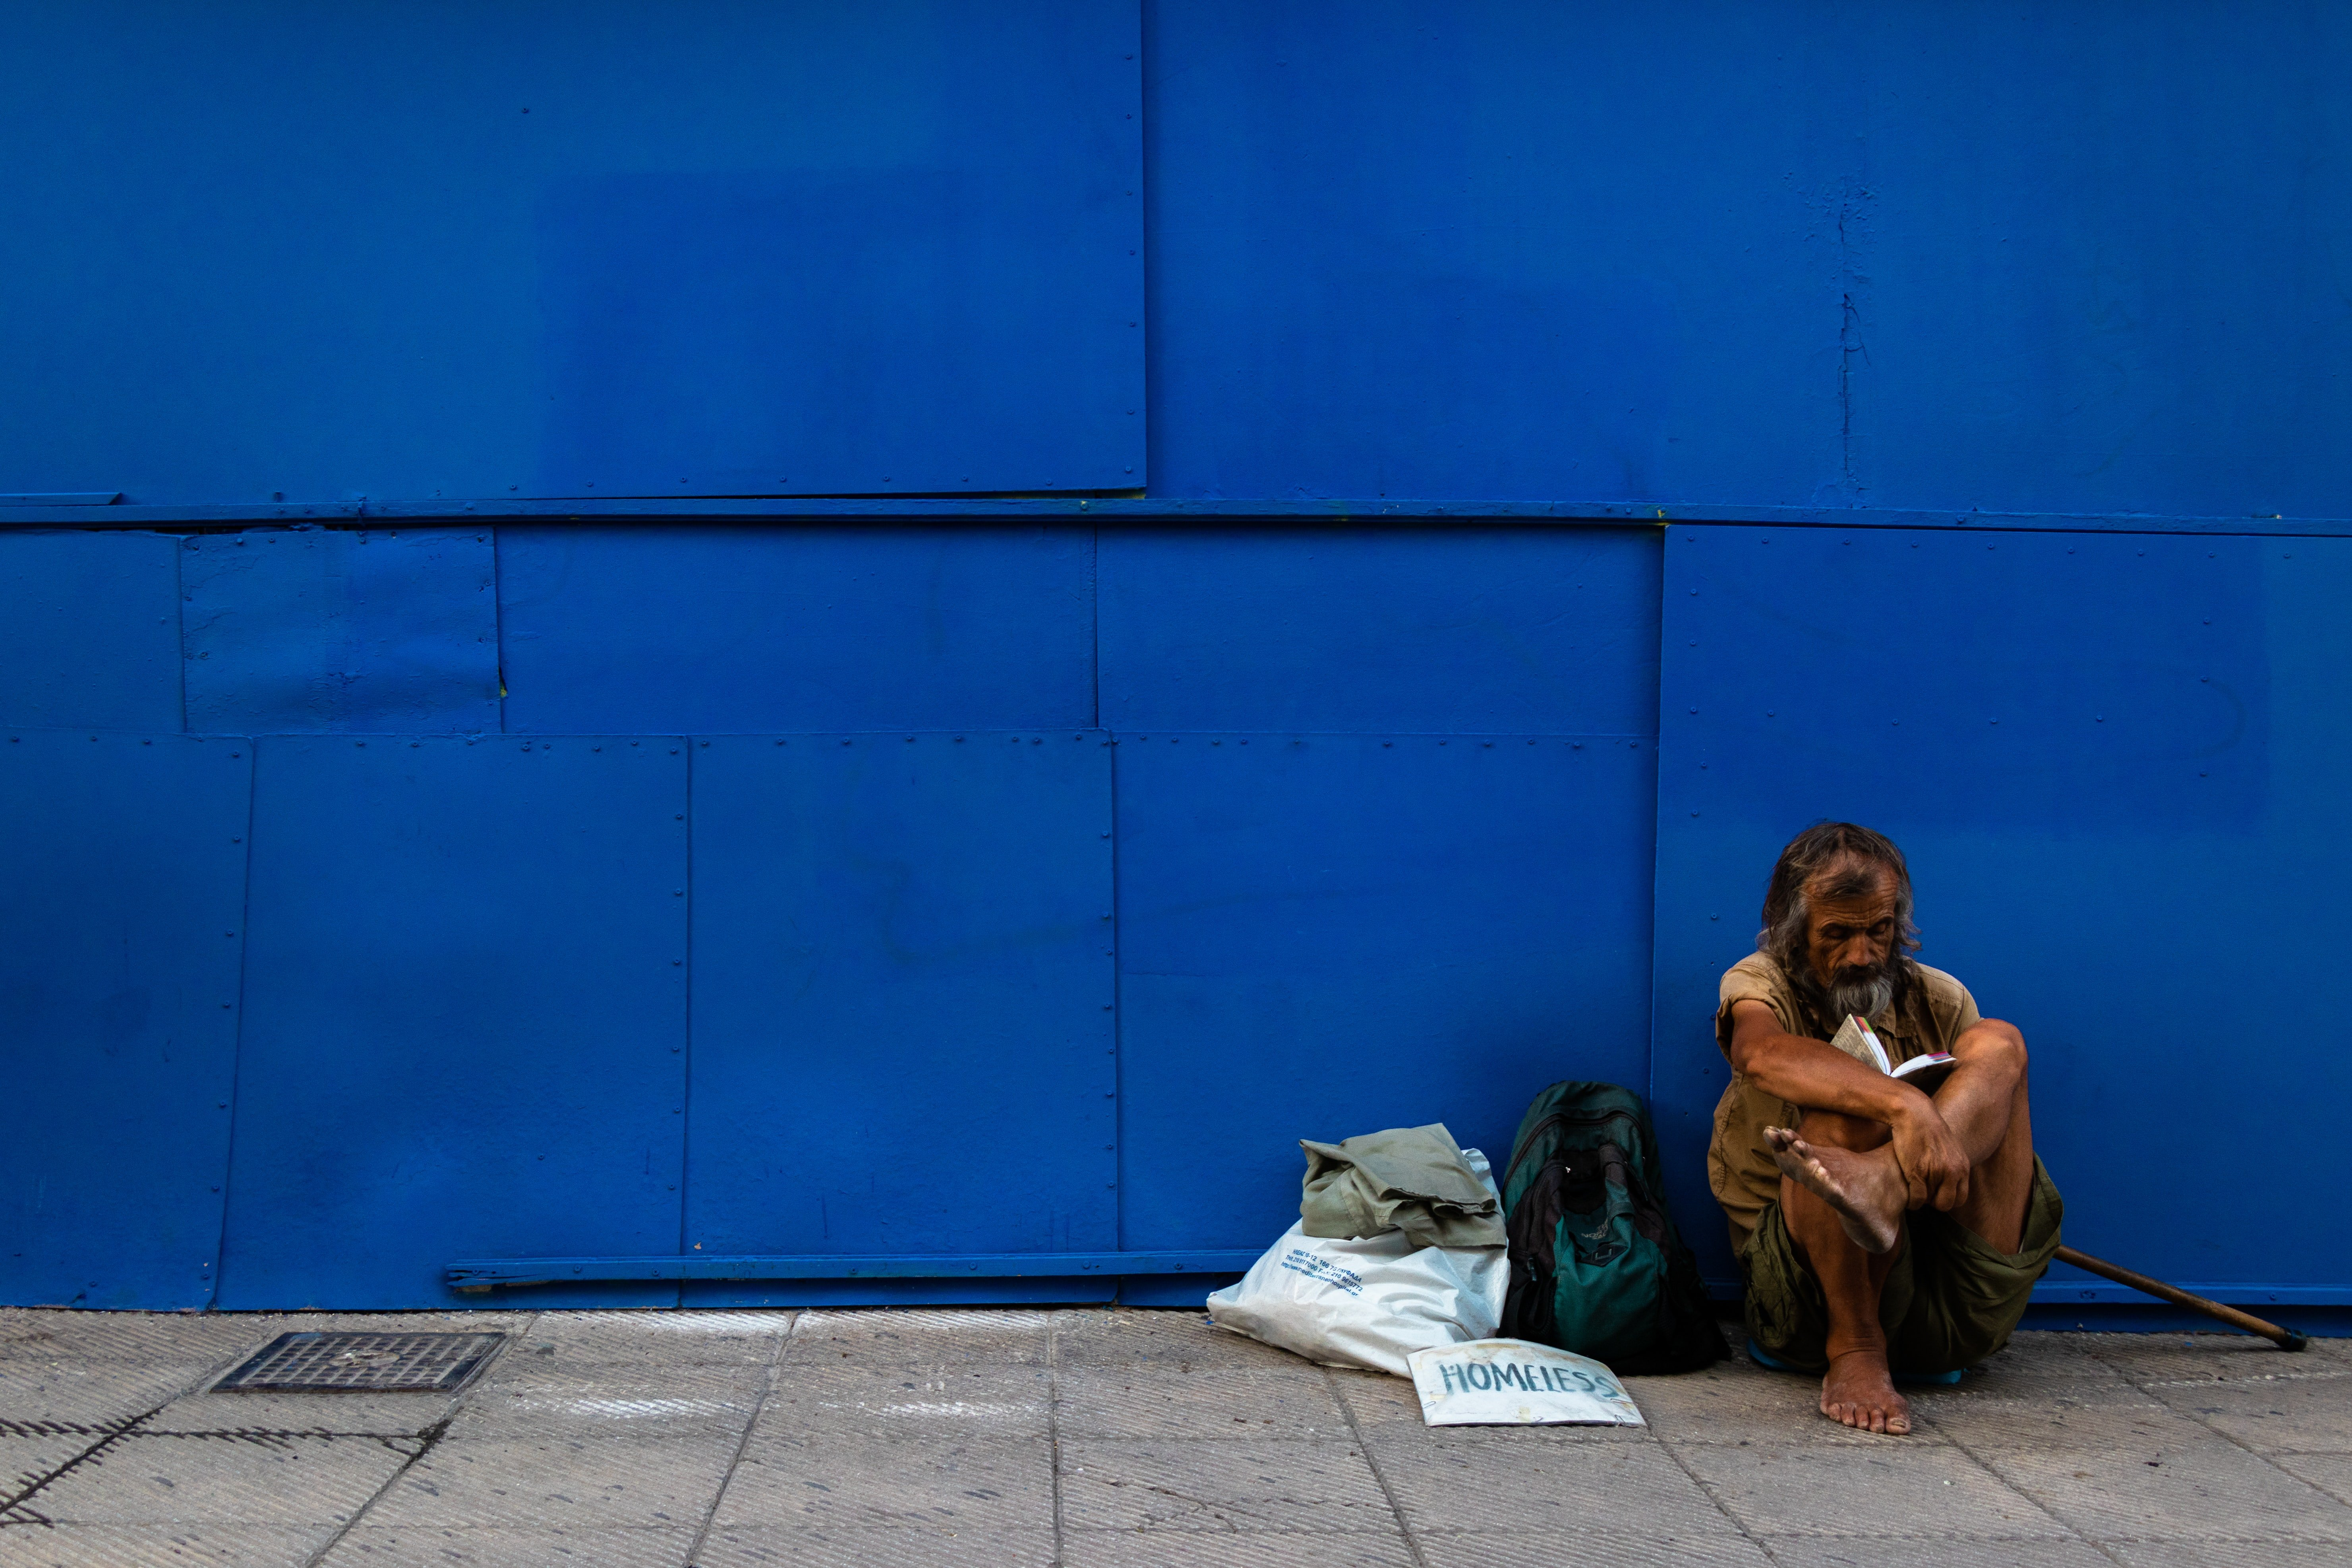 Man sitting against a blue wall sitting next to a couple of bags   Source: Unsplash / Jonathan Kho